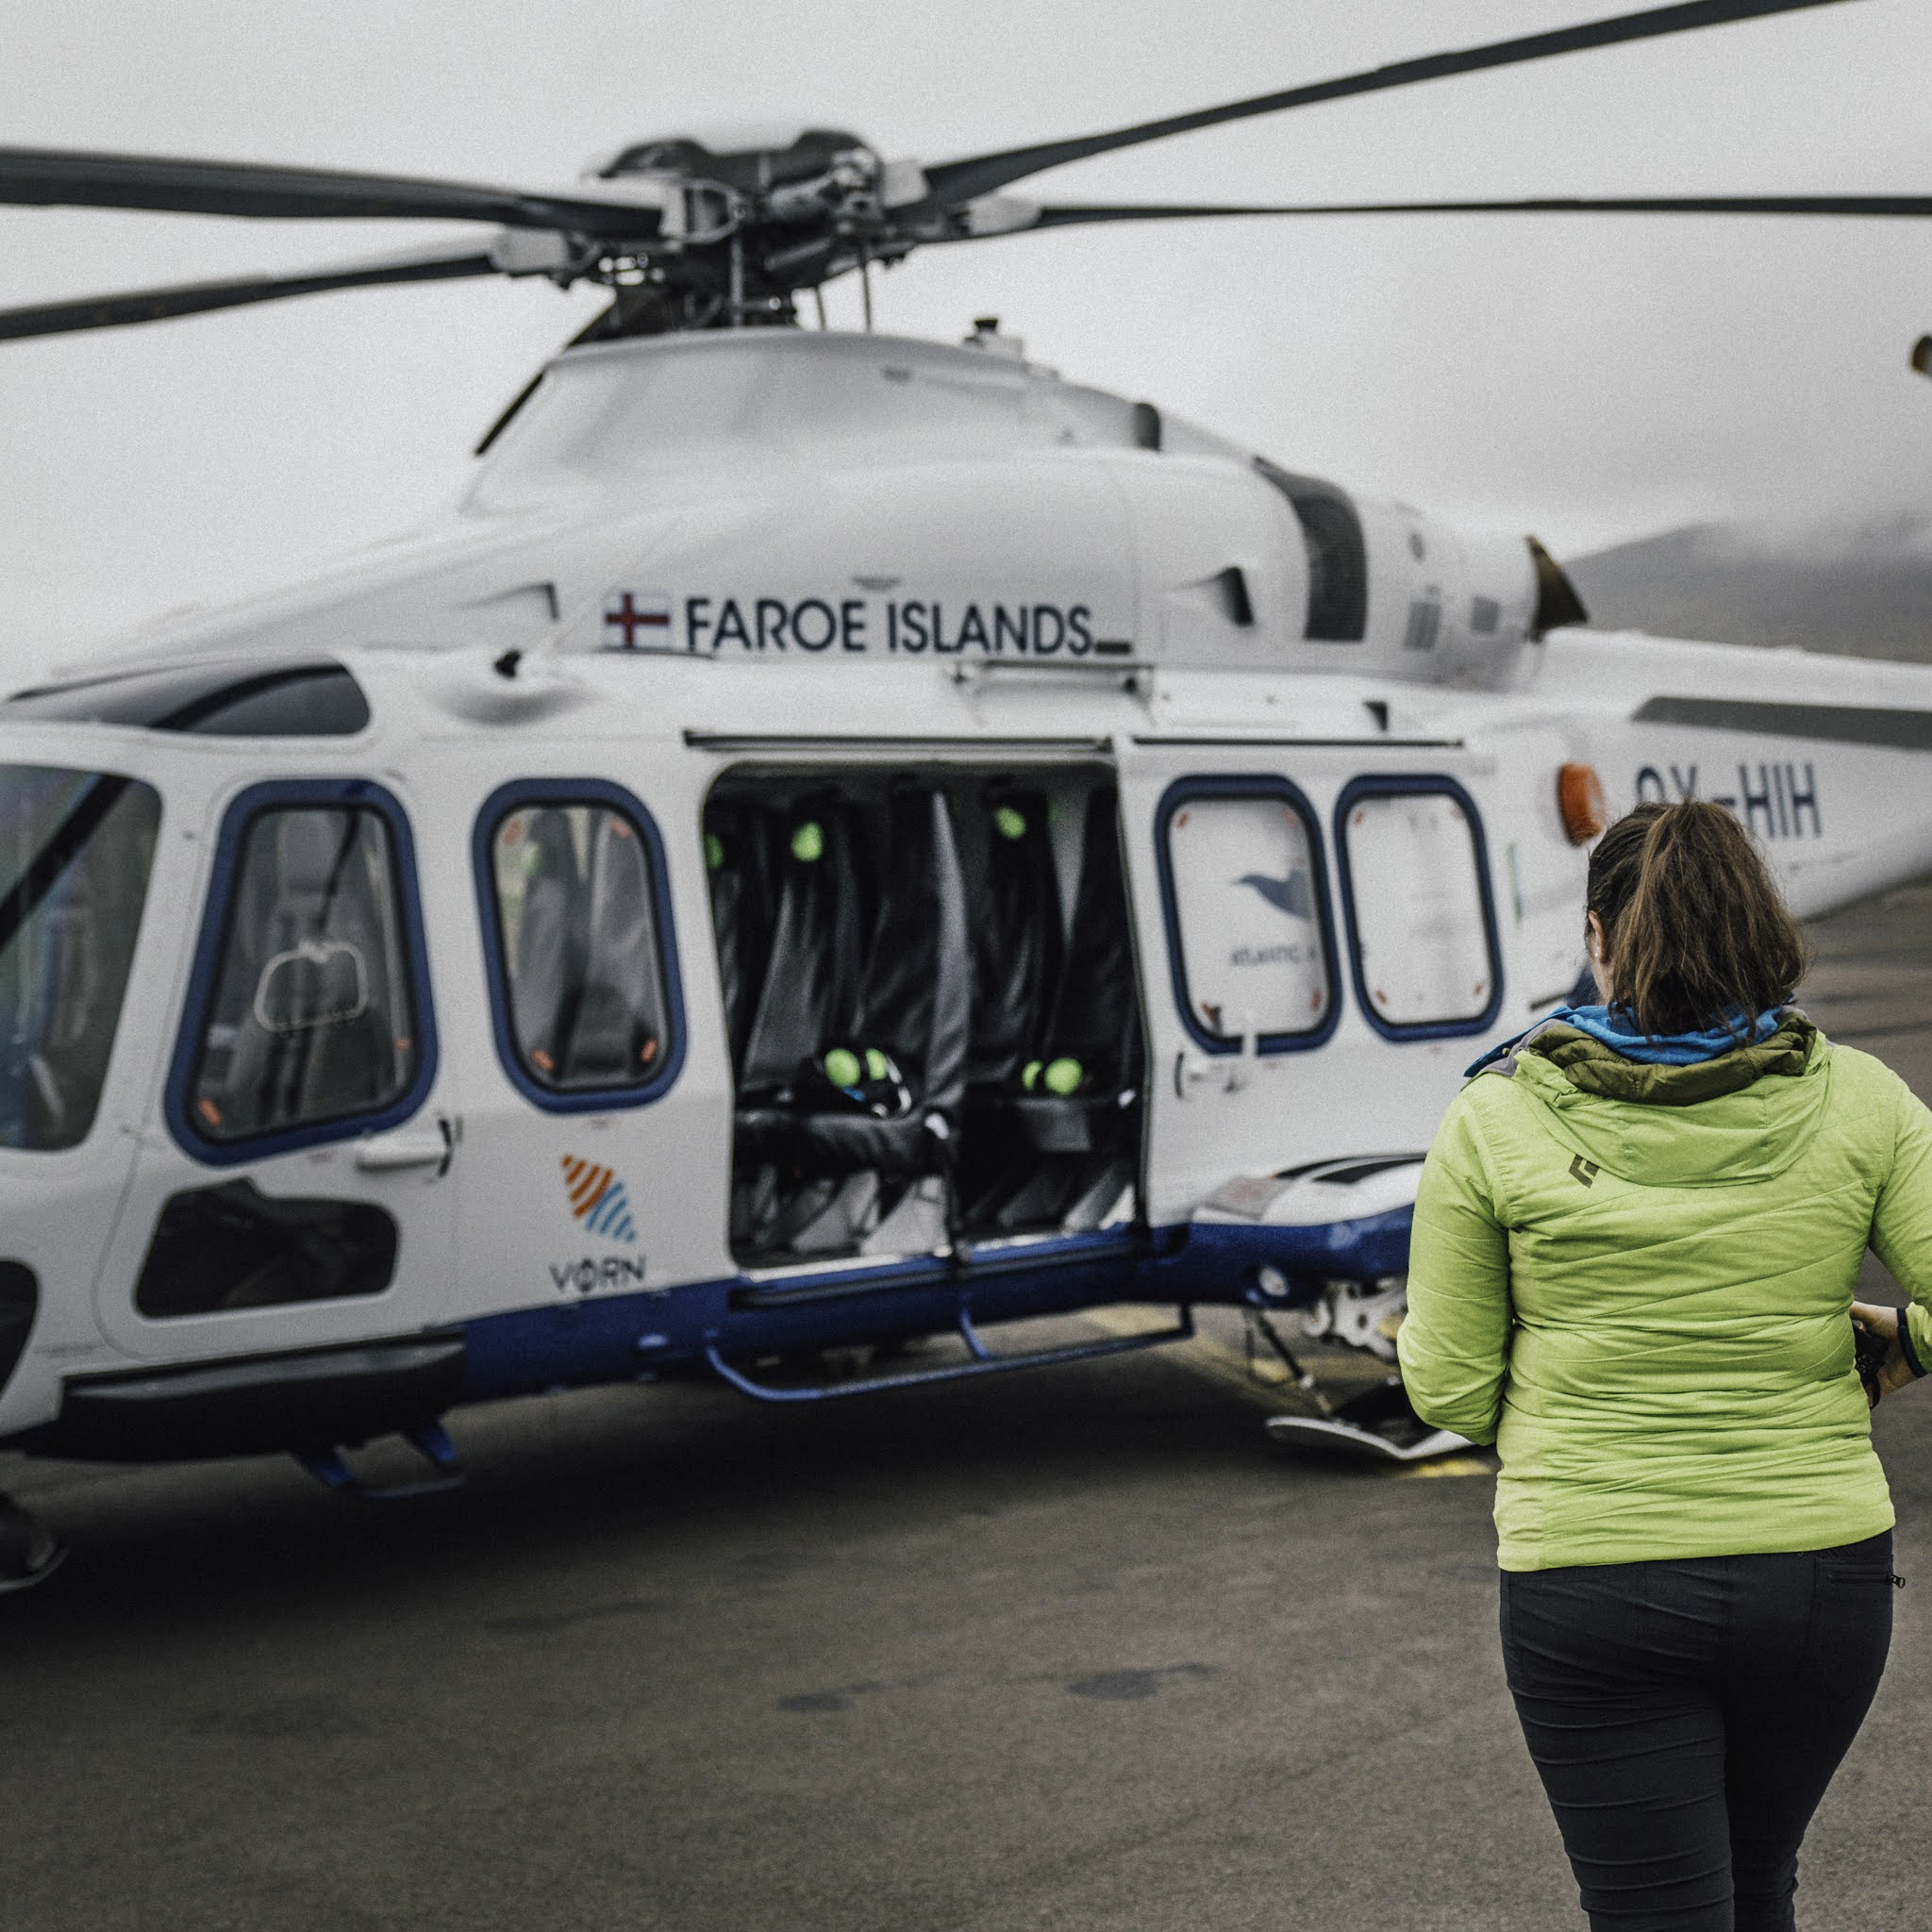 A Helicopter Ride in the Faroe Islands to Mykines liquid grain